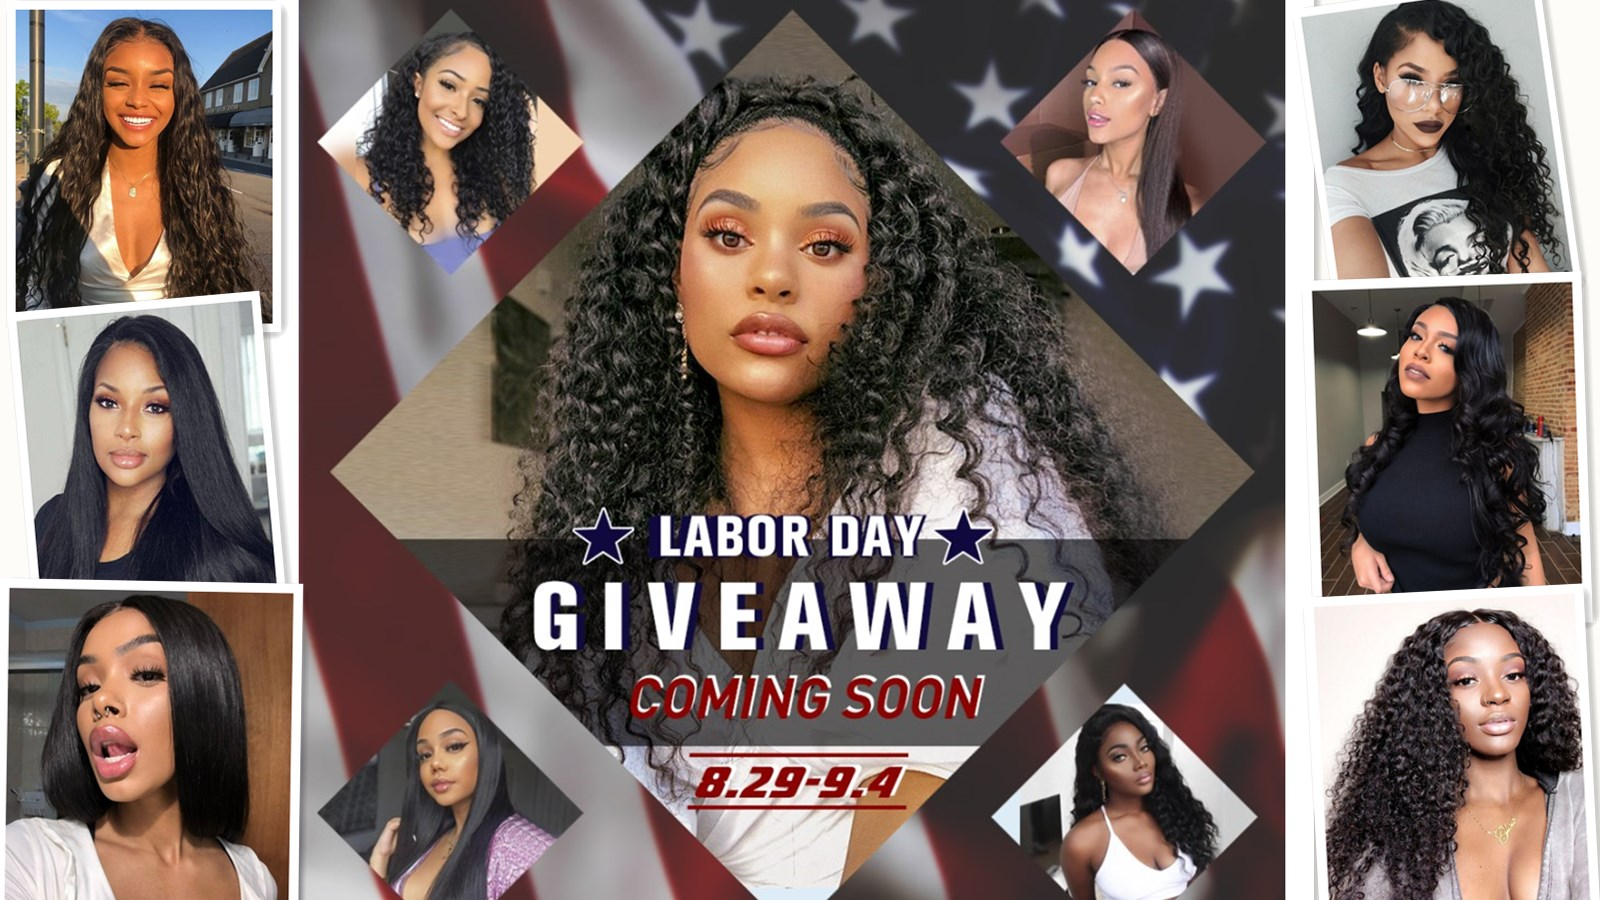 Get Ready to Win Mychicwigs Labor Day Giveaway Free Wigs!